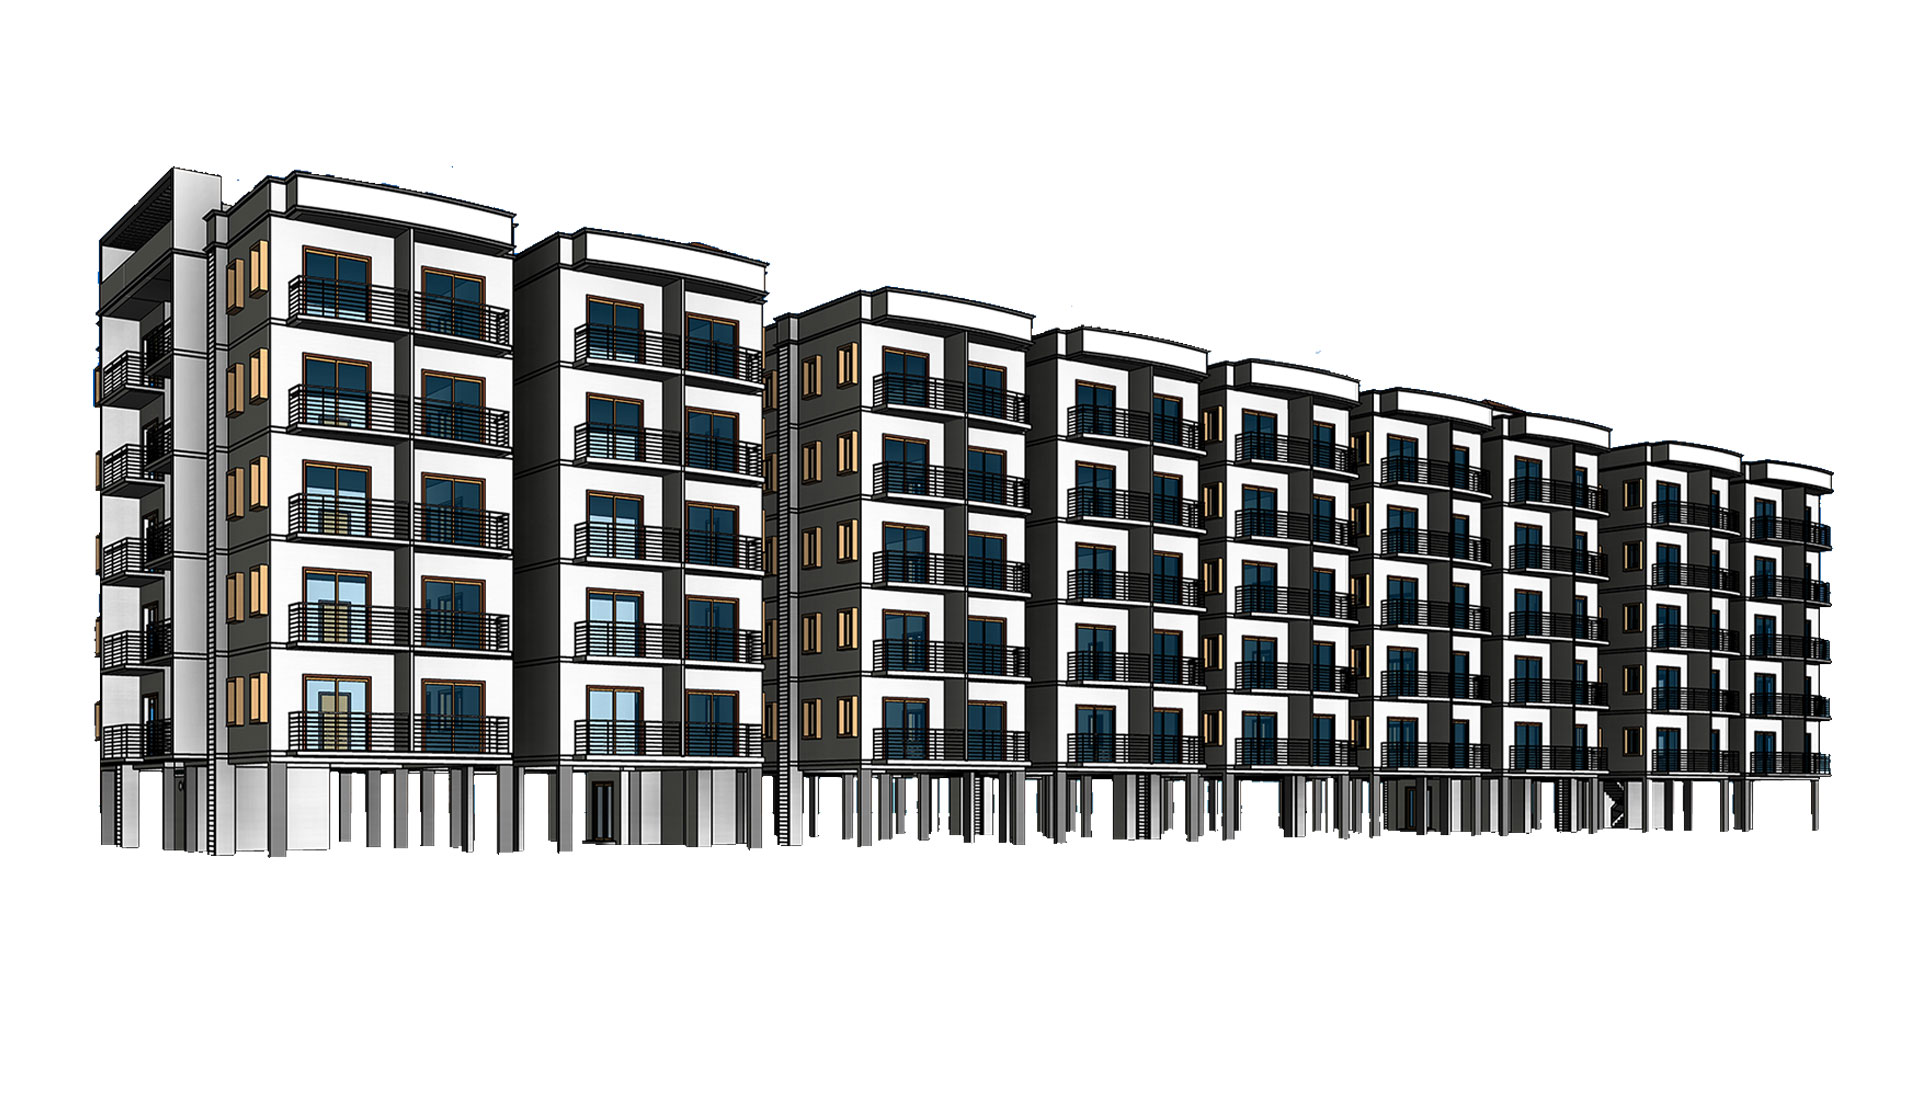 Architecture-Revit-Model_Multi-Residential-Apartments_BIM-Modeling-Project-by-United-BIM